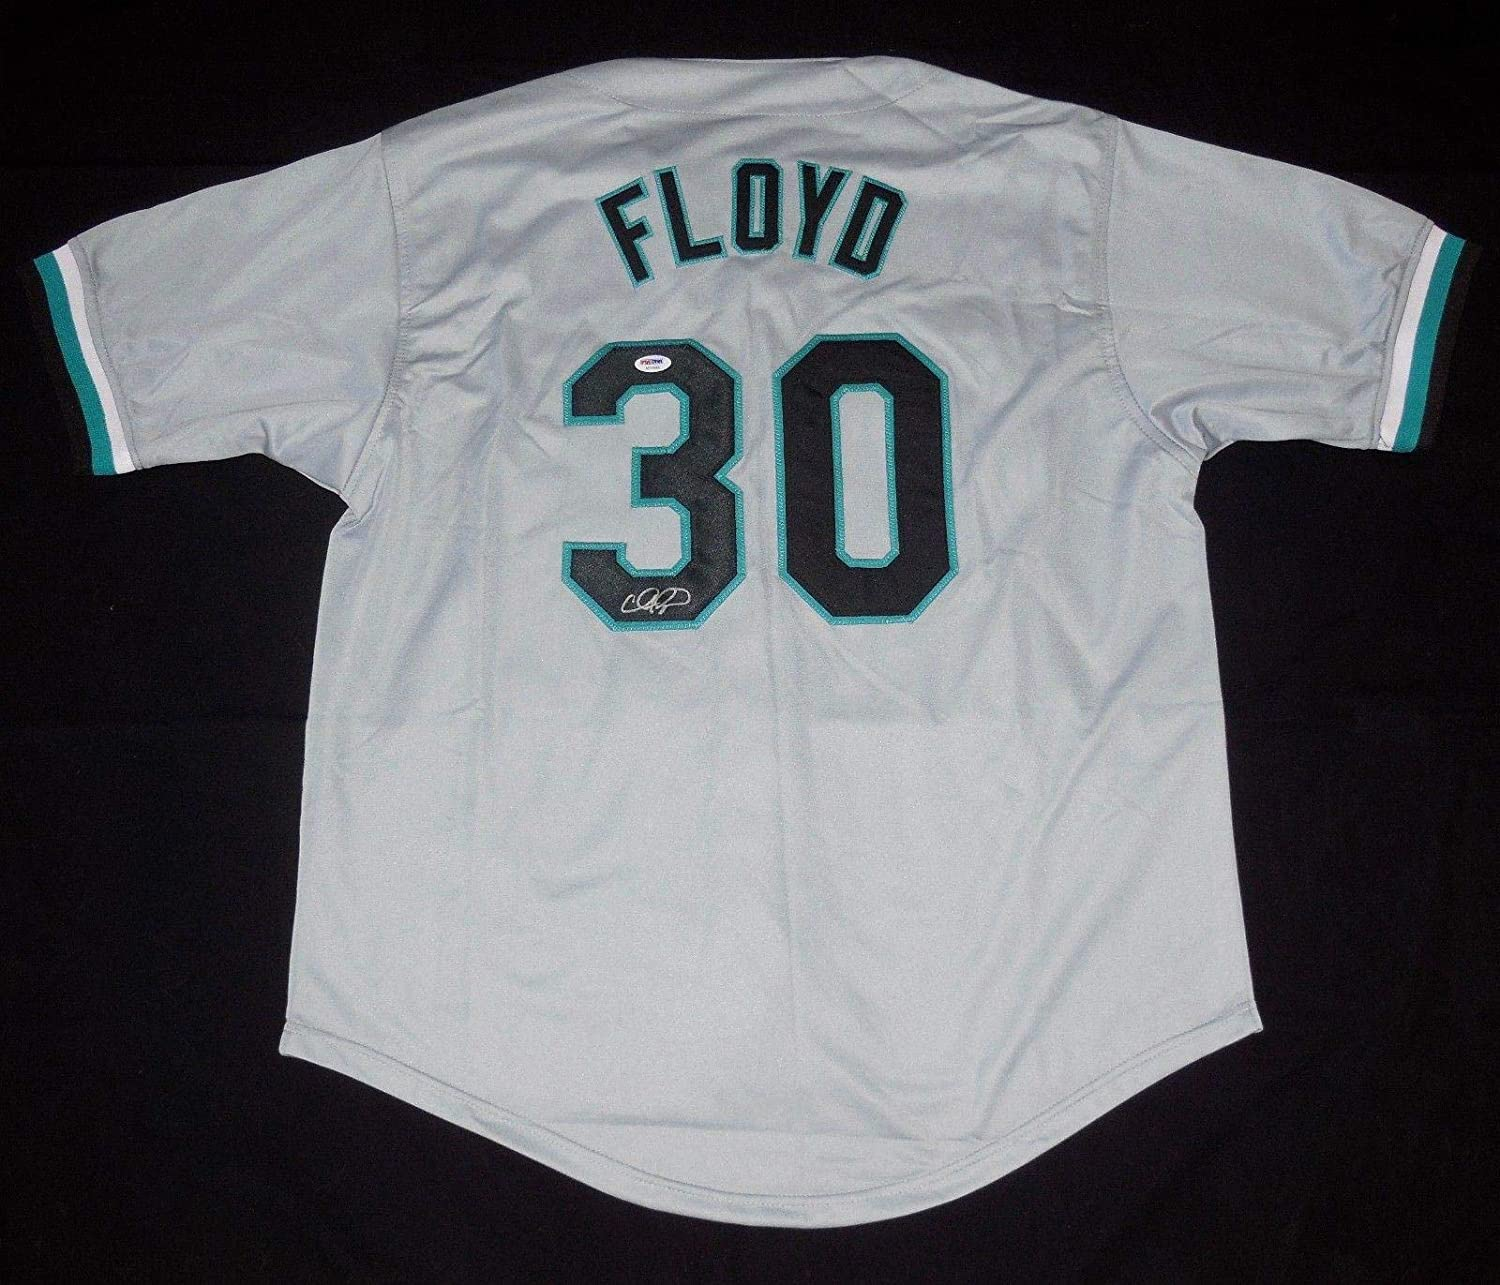 Cliff Floyd Autographed Jersey (florida Marlins) - ! - PSA/DNA Certified - Autographed MLB Jerseys